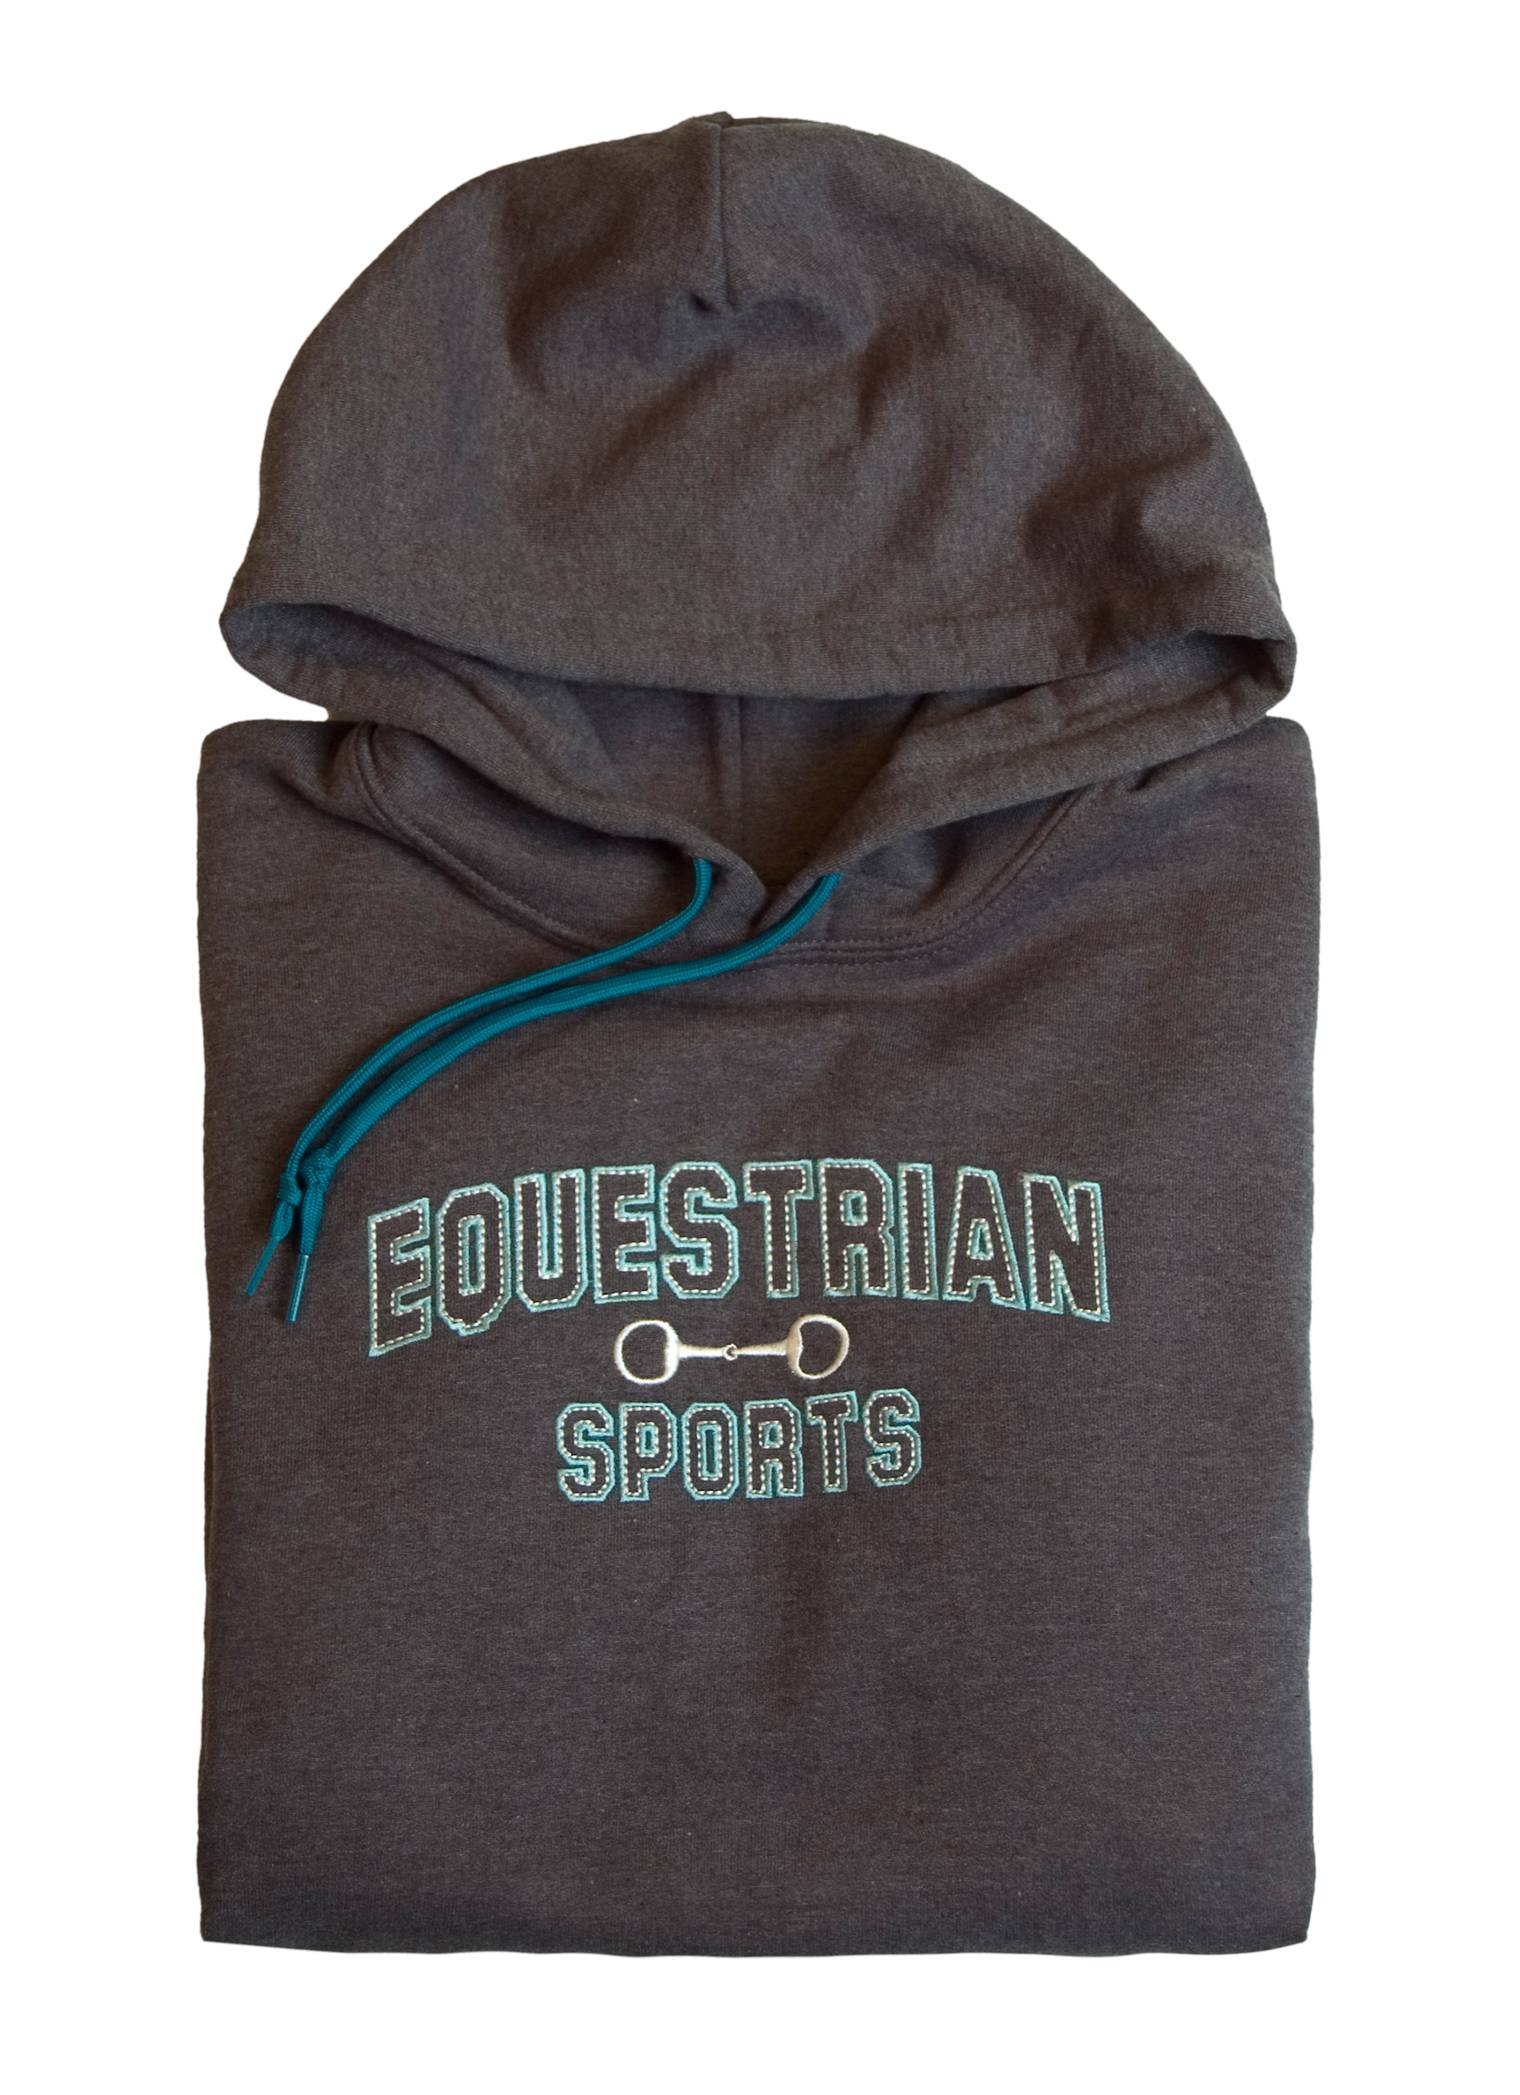 Stirrups Equestrian Sports Embriodered Hooded Sweatshirt - Ladies